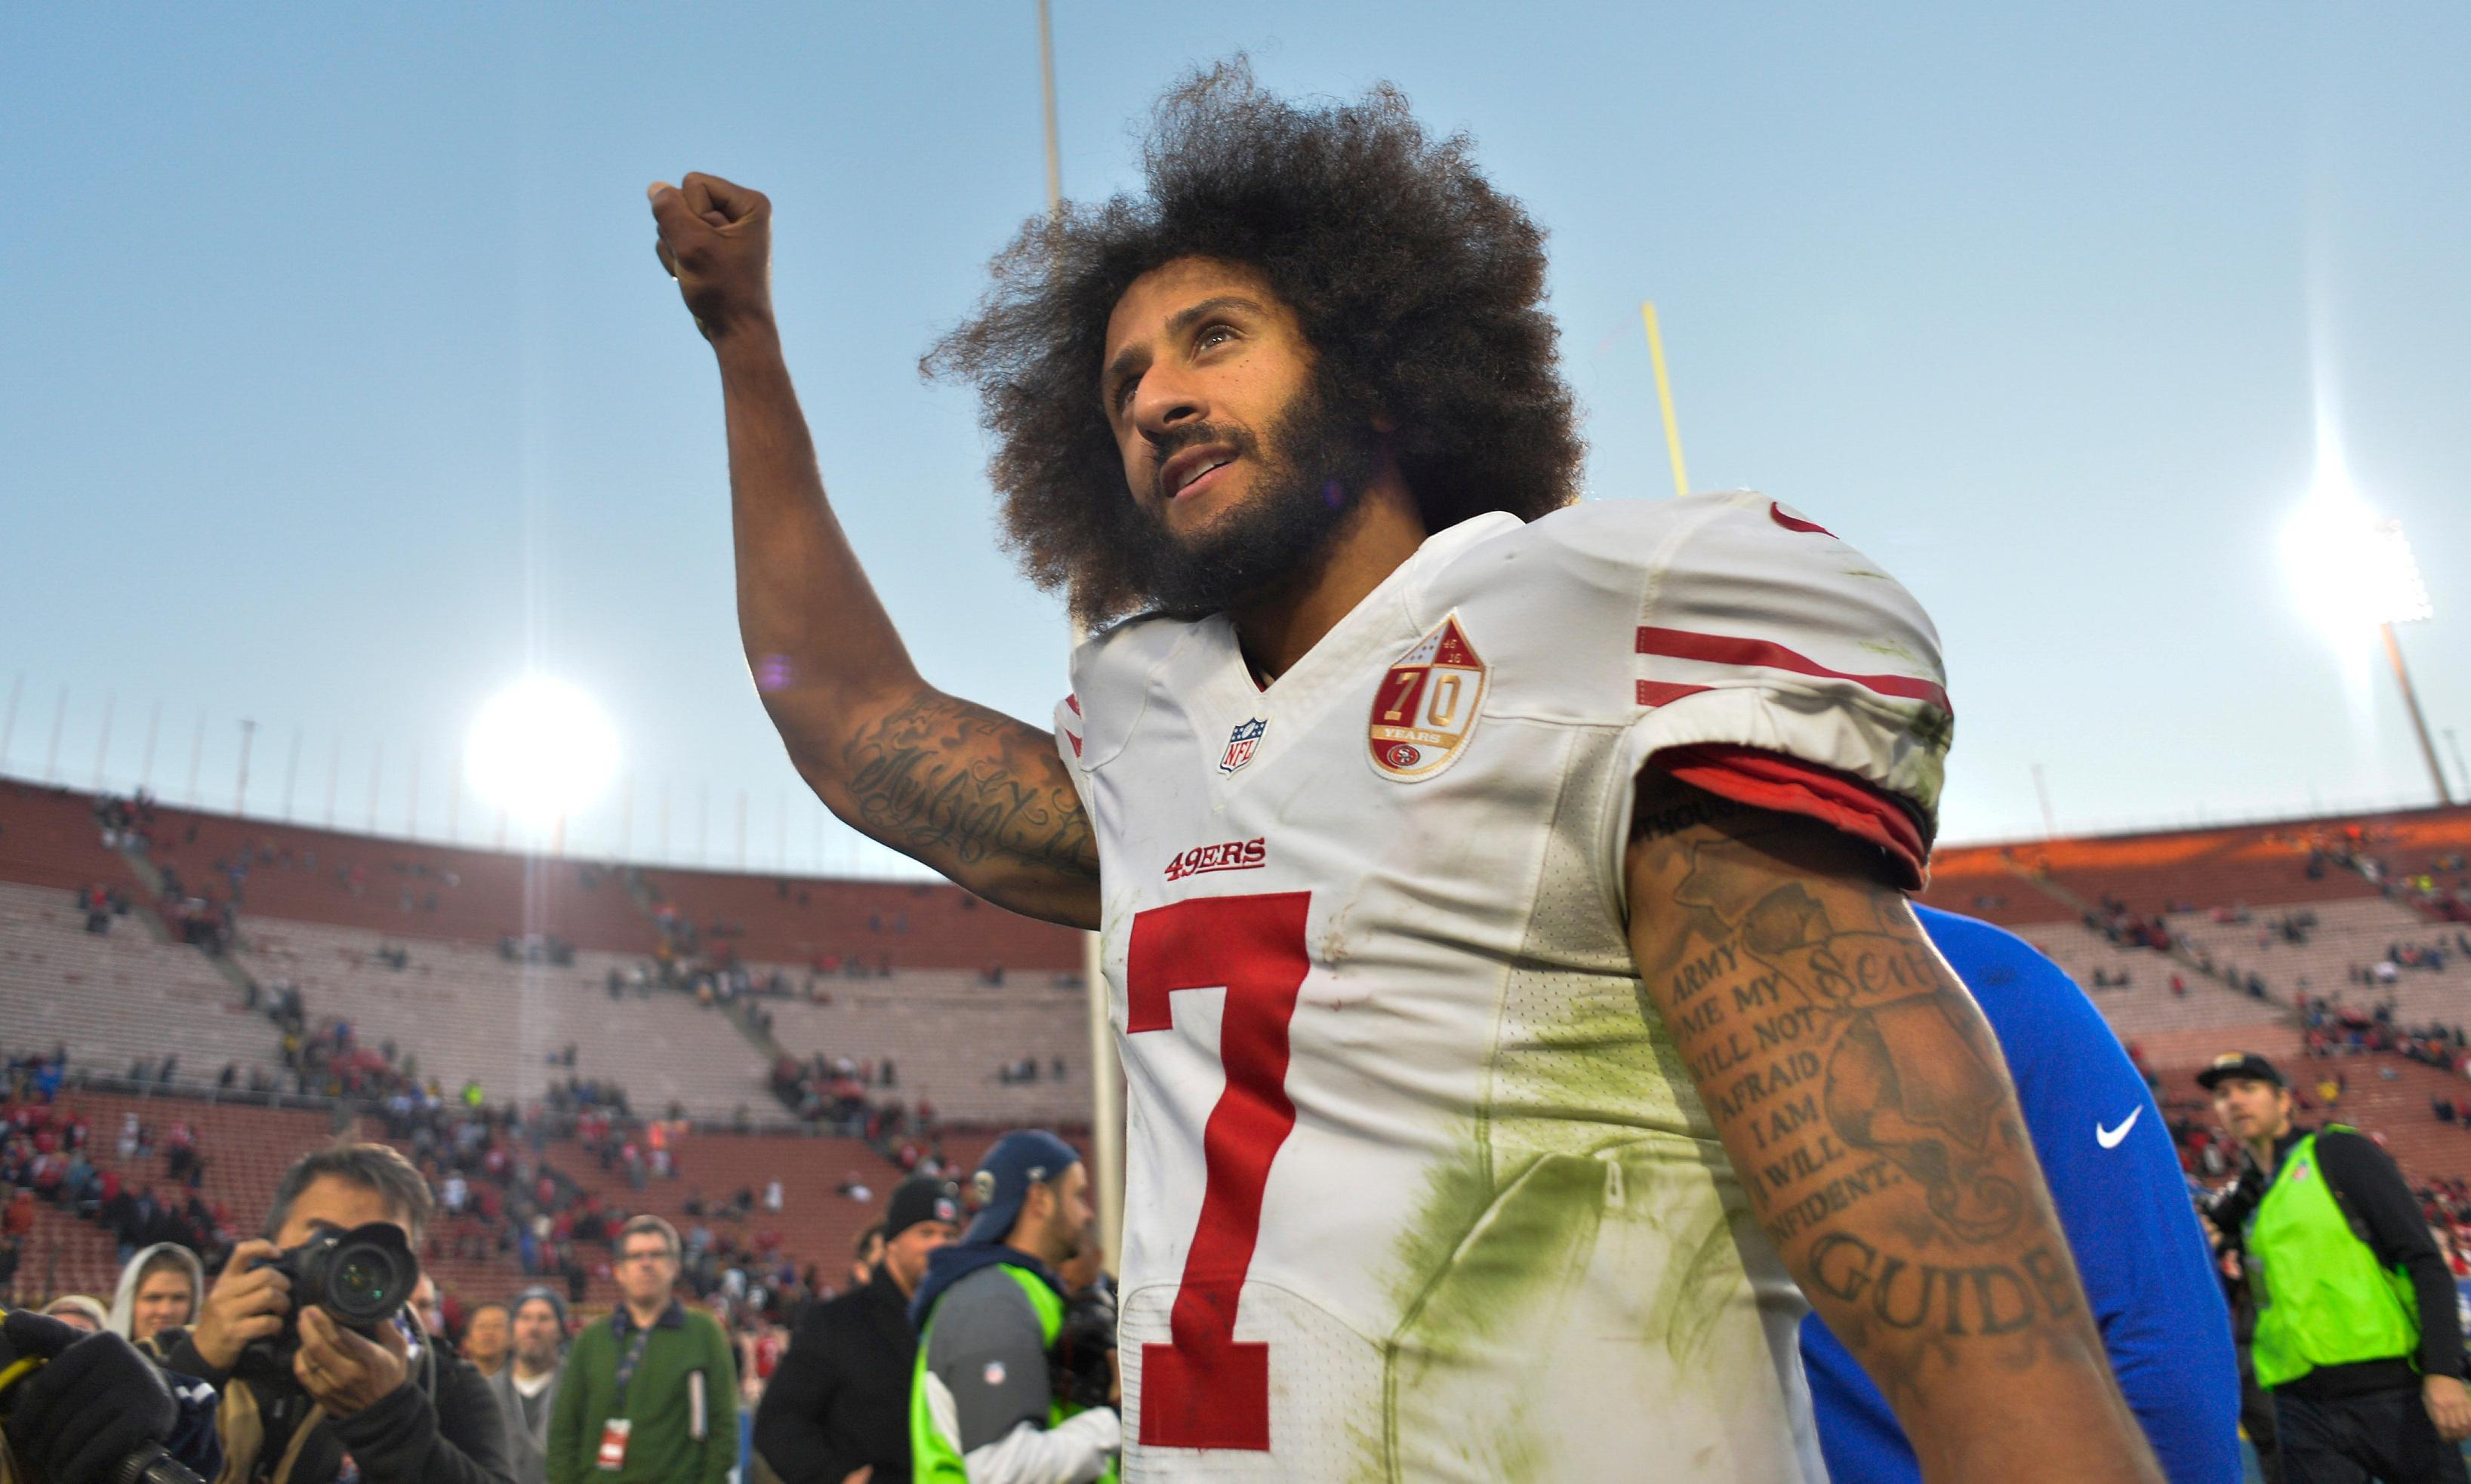 Colin Kaepernick wants NFL return and Patriots may be interested, says lawyer